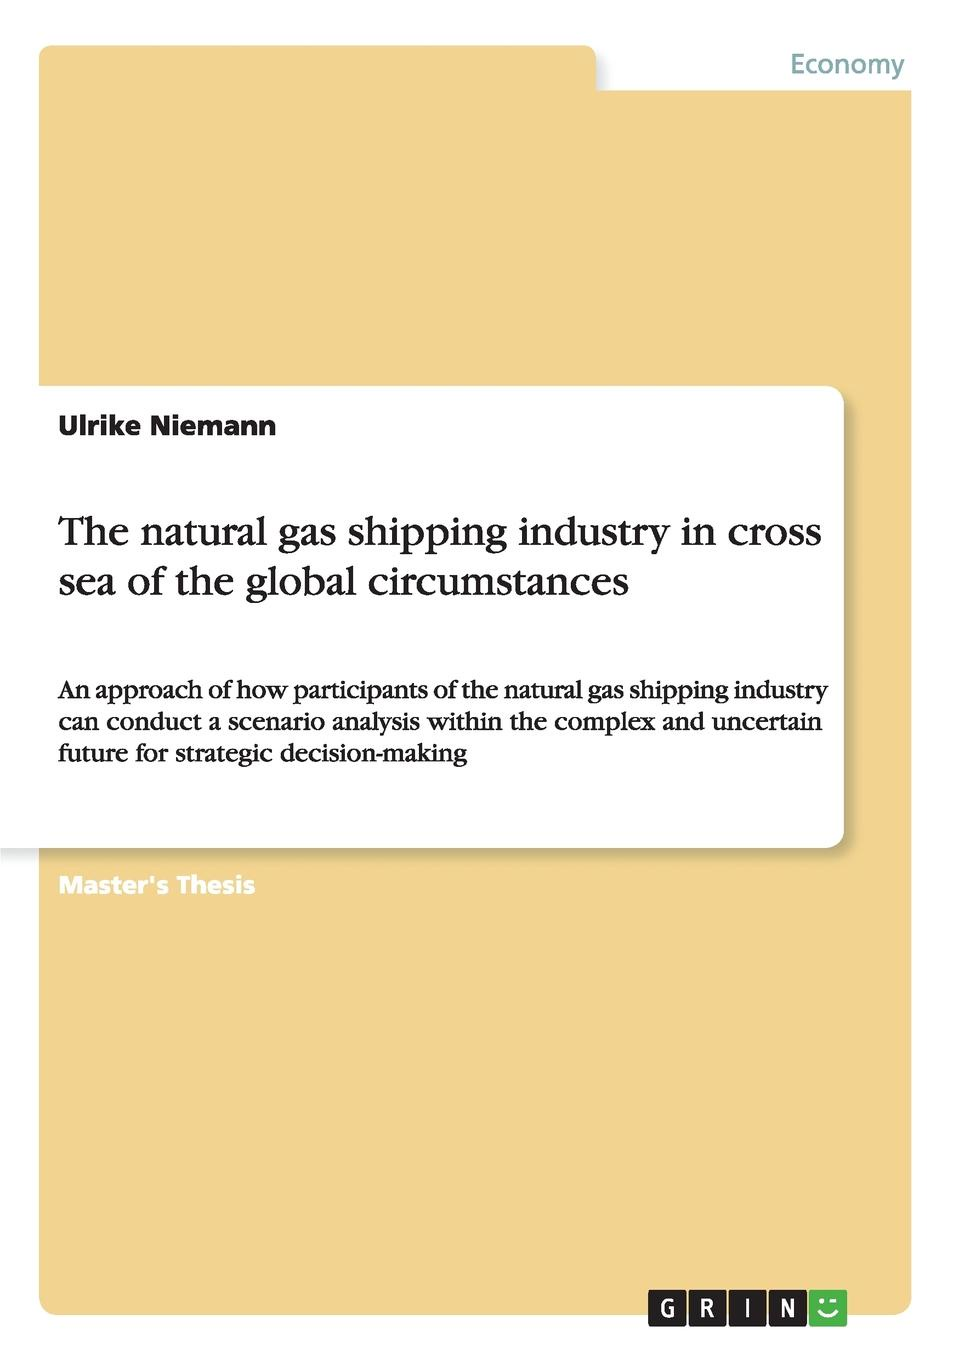 лучшая цена Ulrike Niemann The natural gas shipping industry in cross sea of the global circumstances